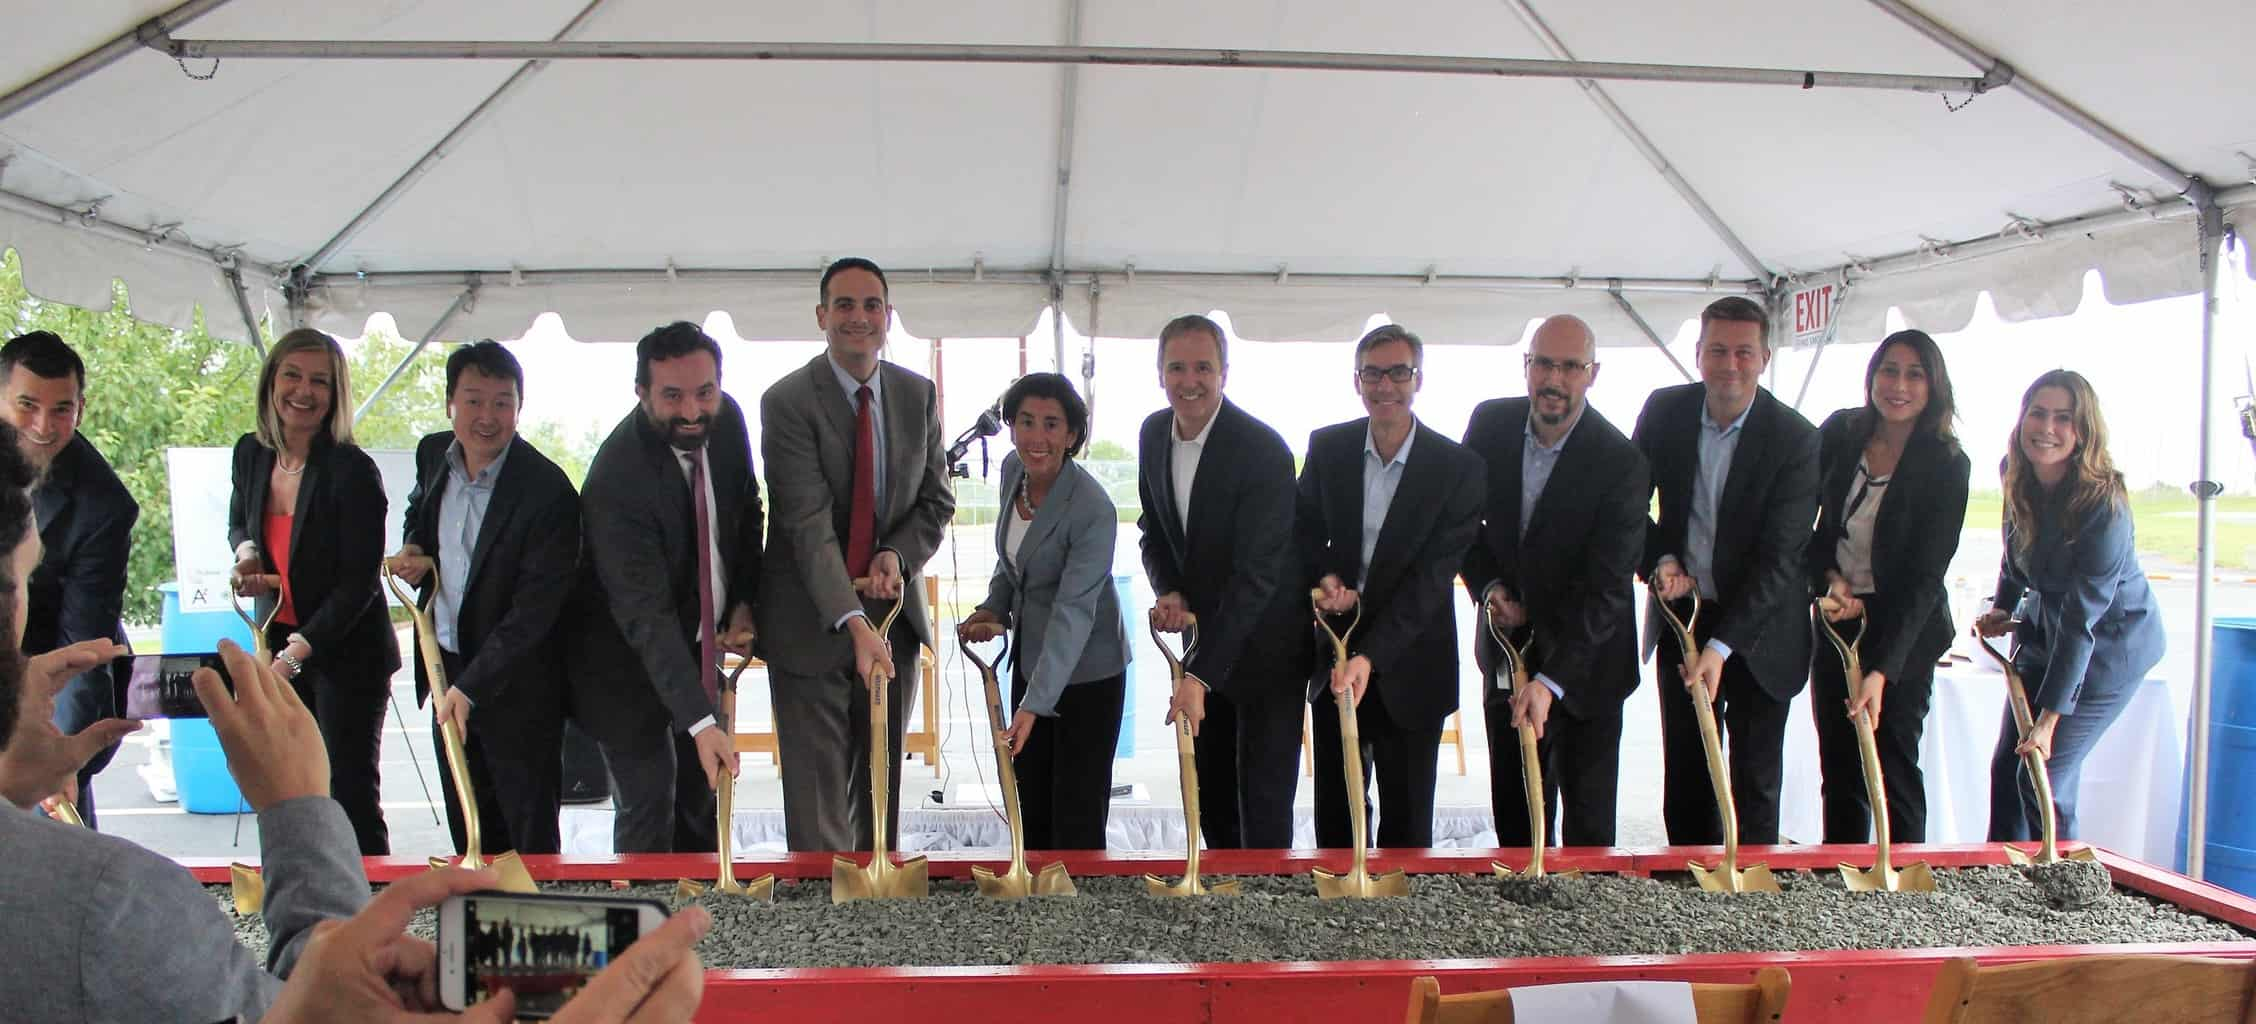 Rhode Island Governor Gina Raimondo joined state and local officials and CEO of Rubius Therapeutics Dr. Pablo Cagnoni to break ground broken on the new Rubius facility.